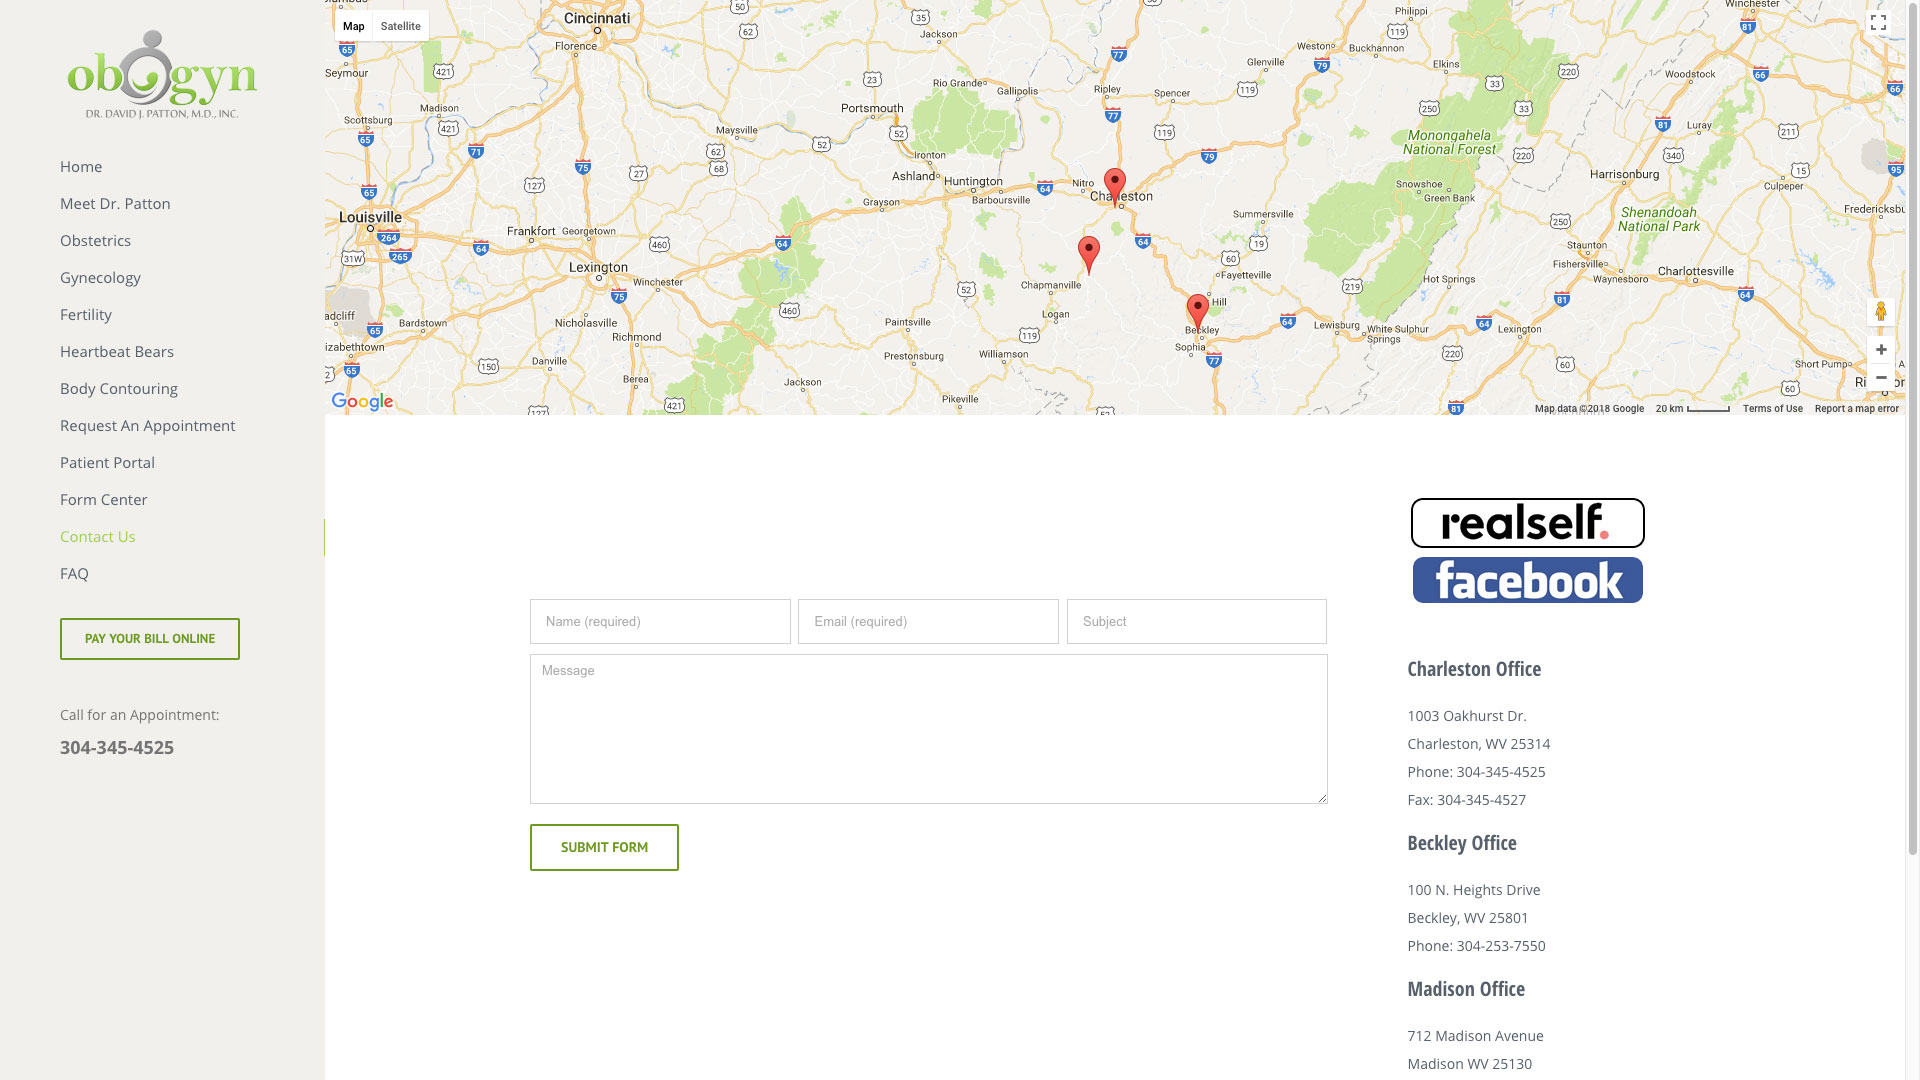 Dr. Patton OBGYN Website Contact Page Cucumber and Company Web Design Beckley, WV